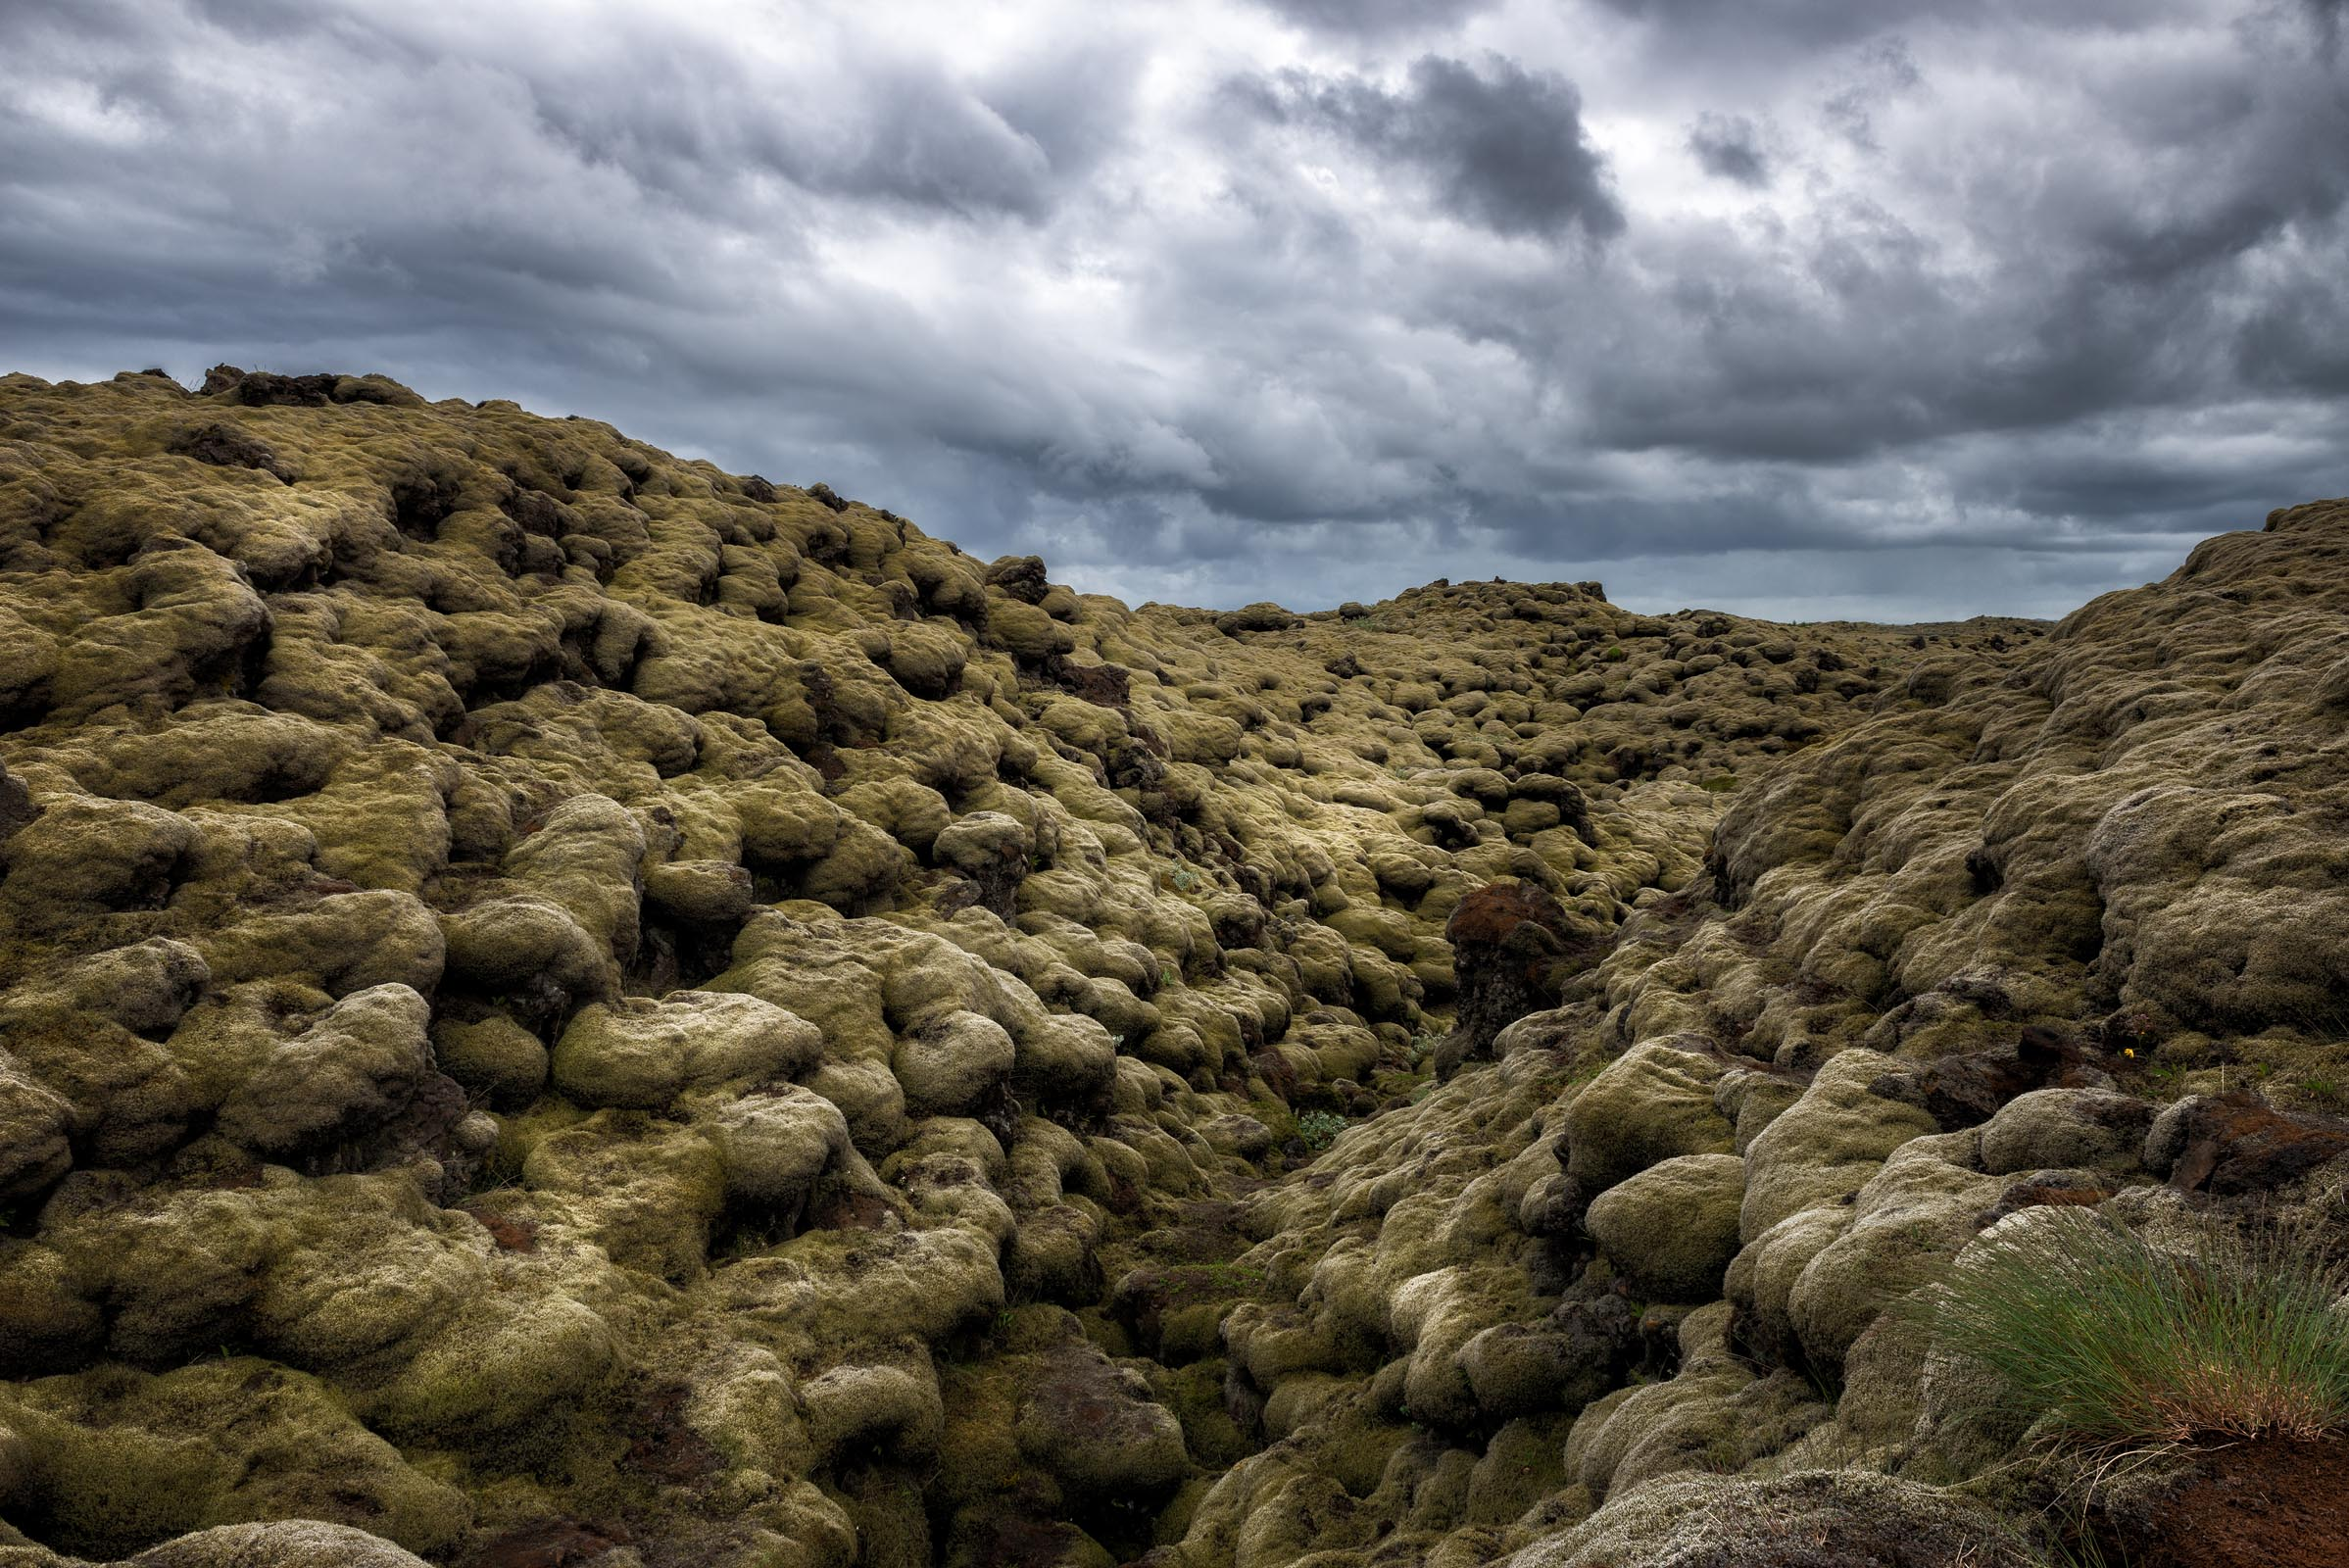 Photograph of Lava Field in Eldhraun, Iceland by Brent Goldman Photography